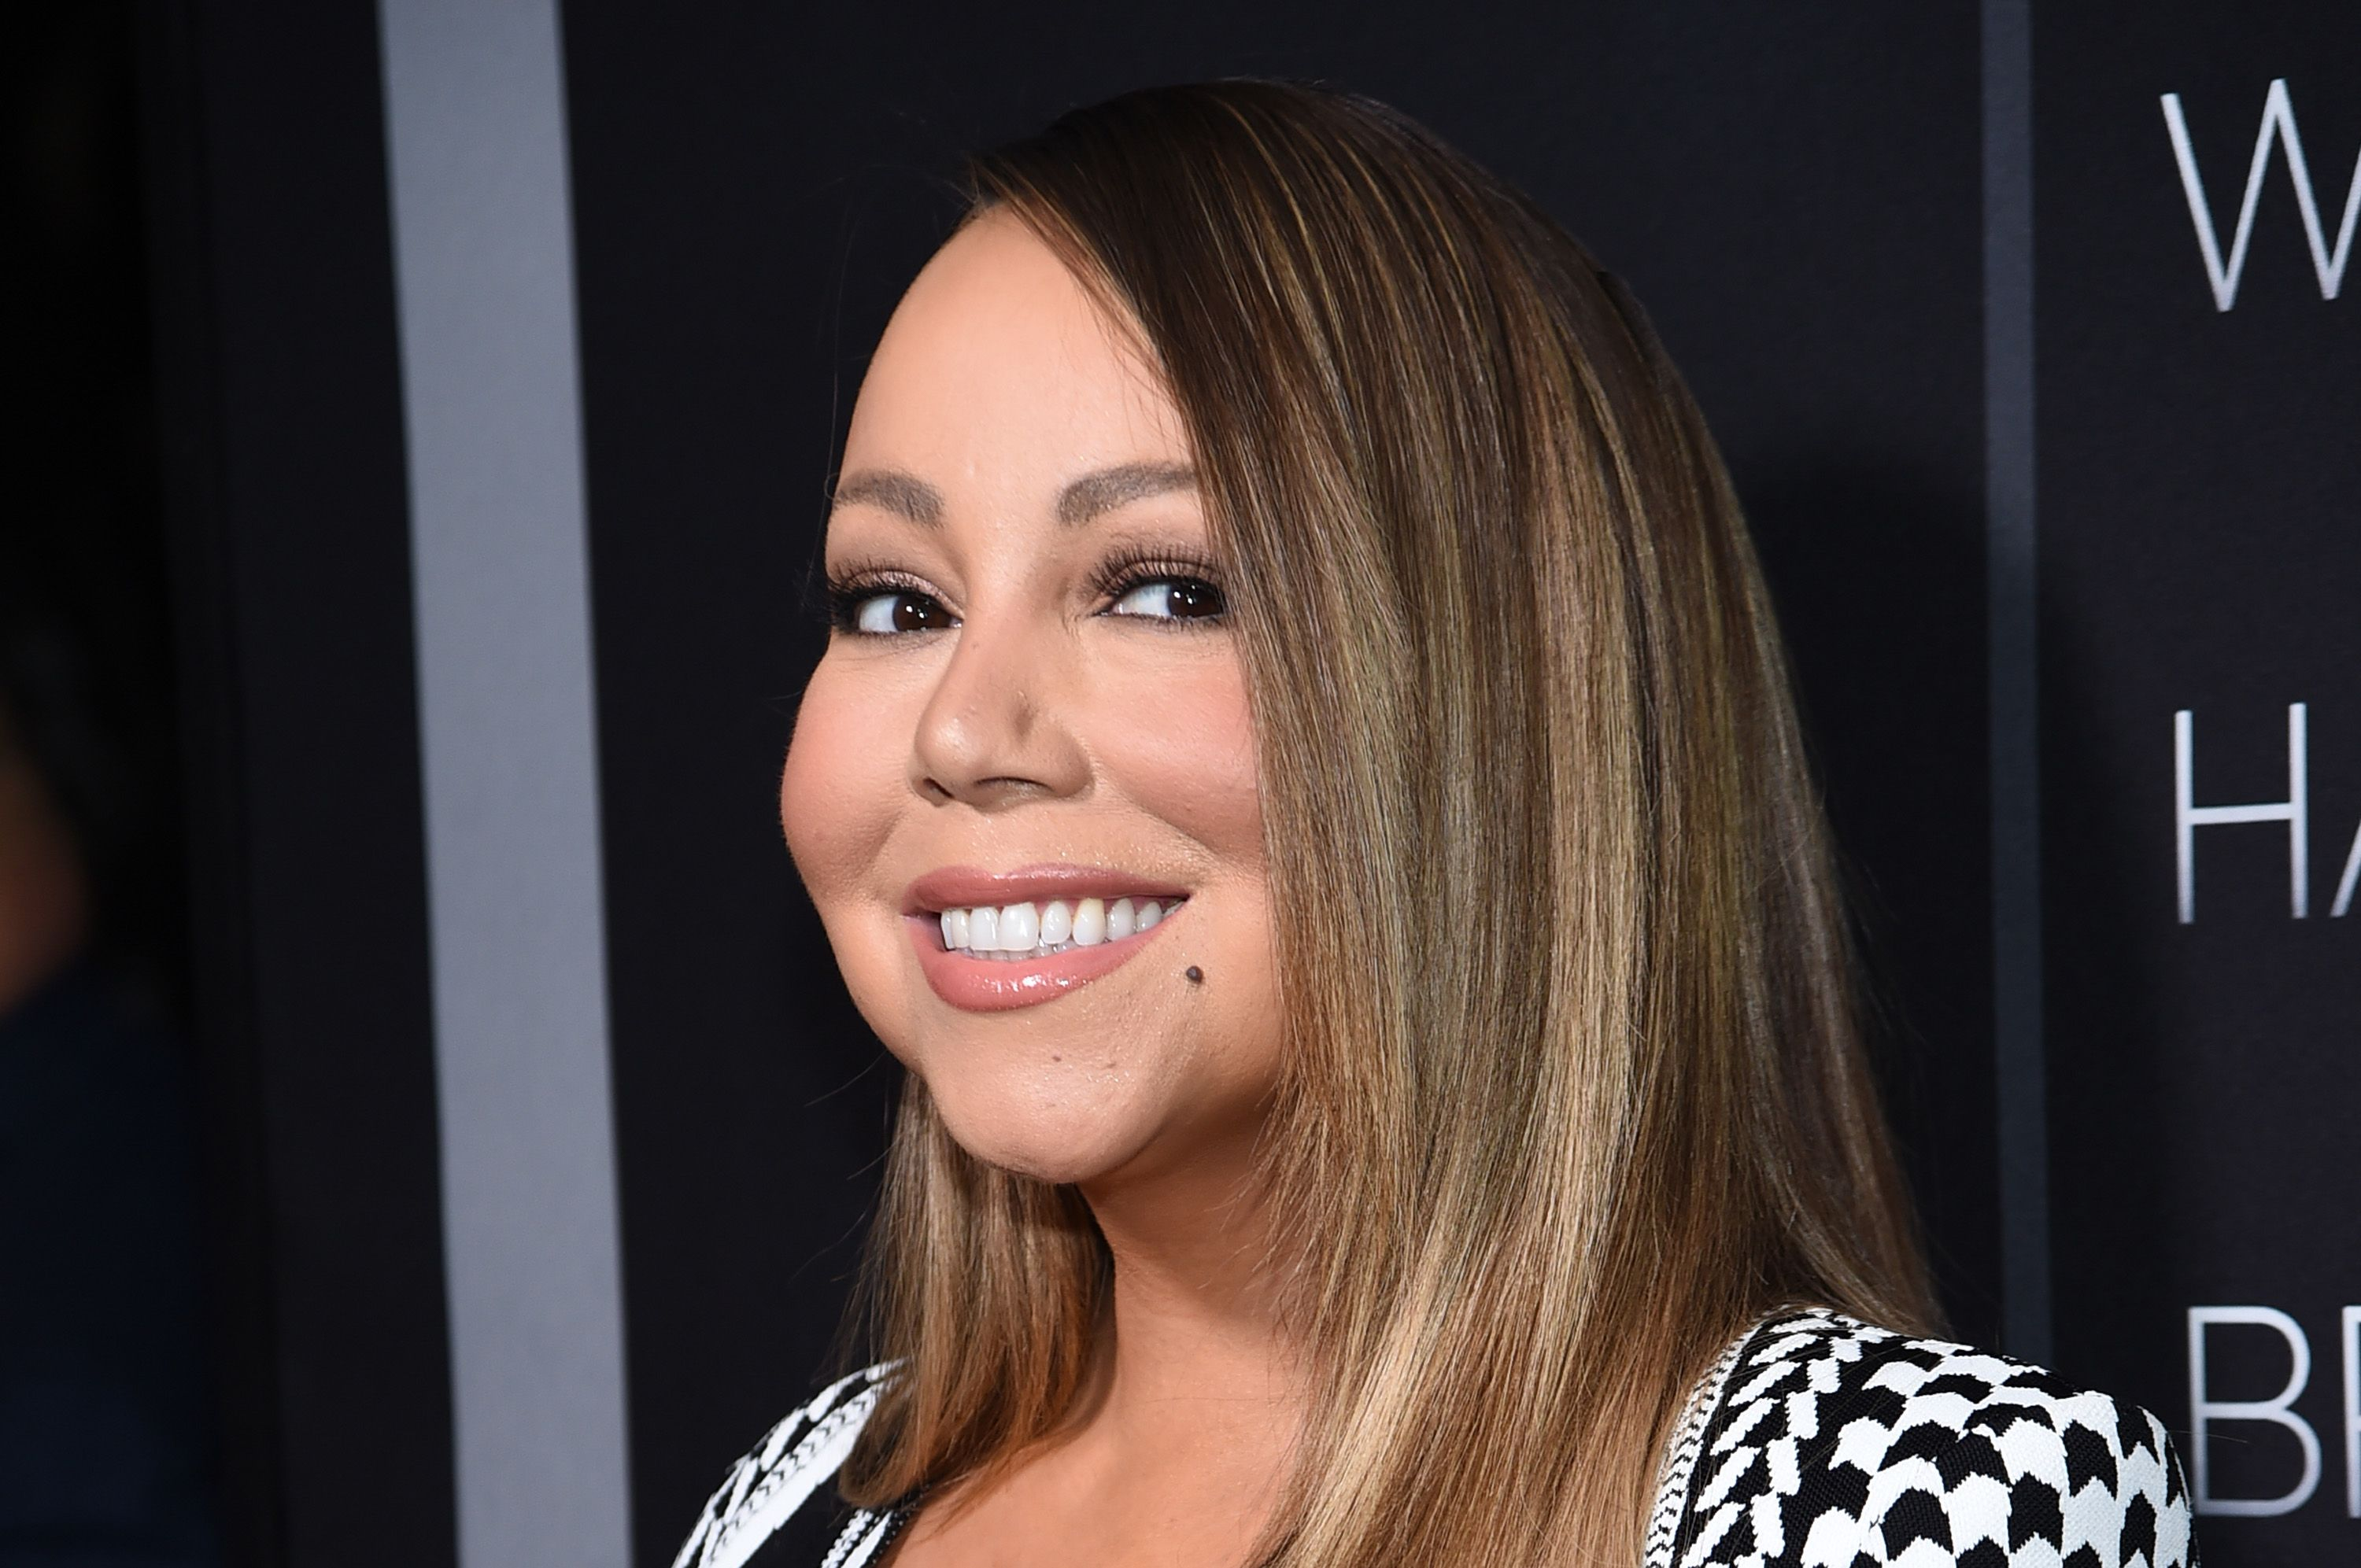 """Mariah Carey during the premiere of Tyler Perry's """"A Fall From Grace"""" at Metrograph on January 13, 2020 in New York City. 